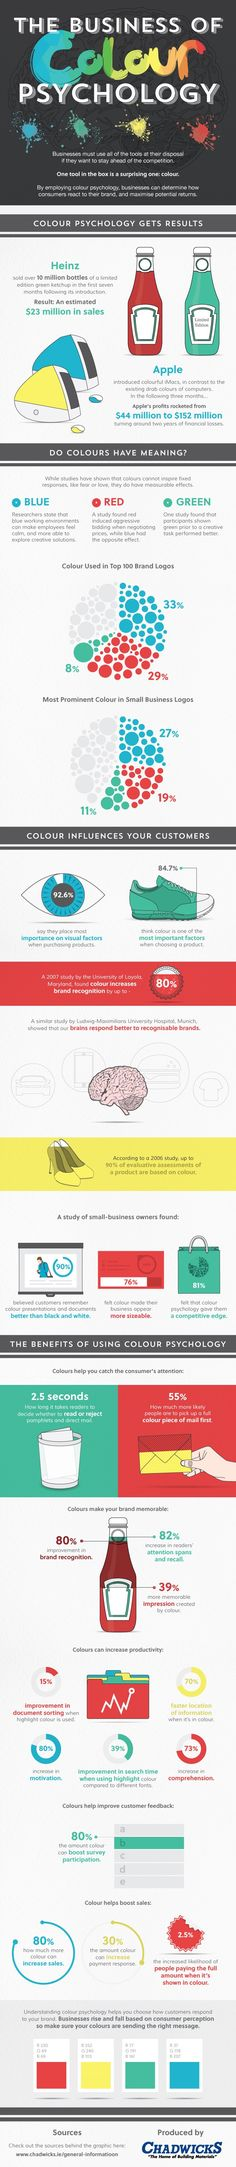 The Business of Colour Psychology   #infographic #visualweb